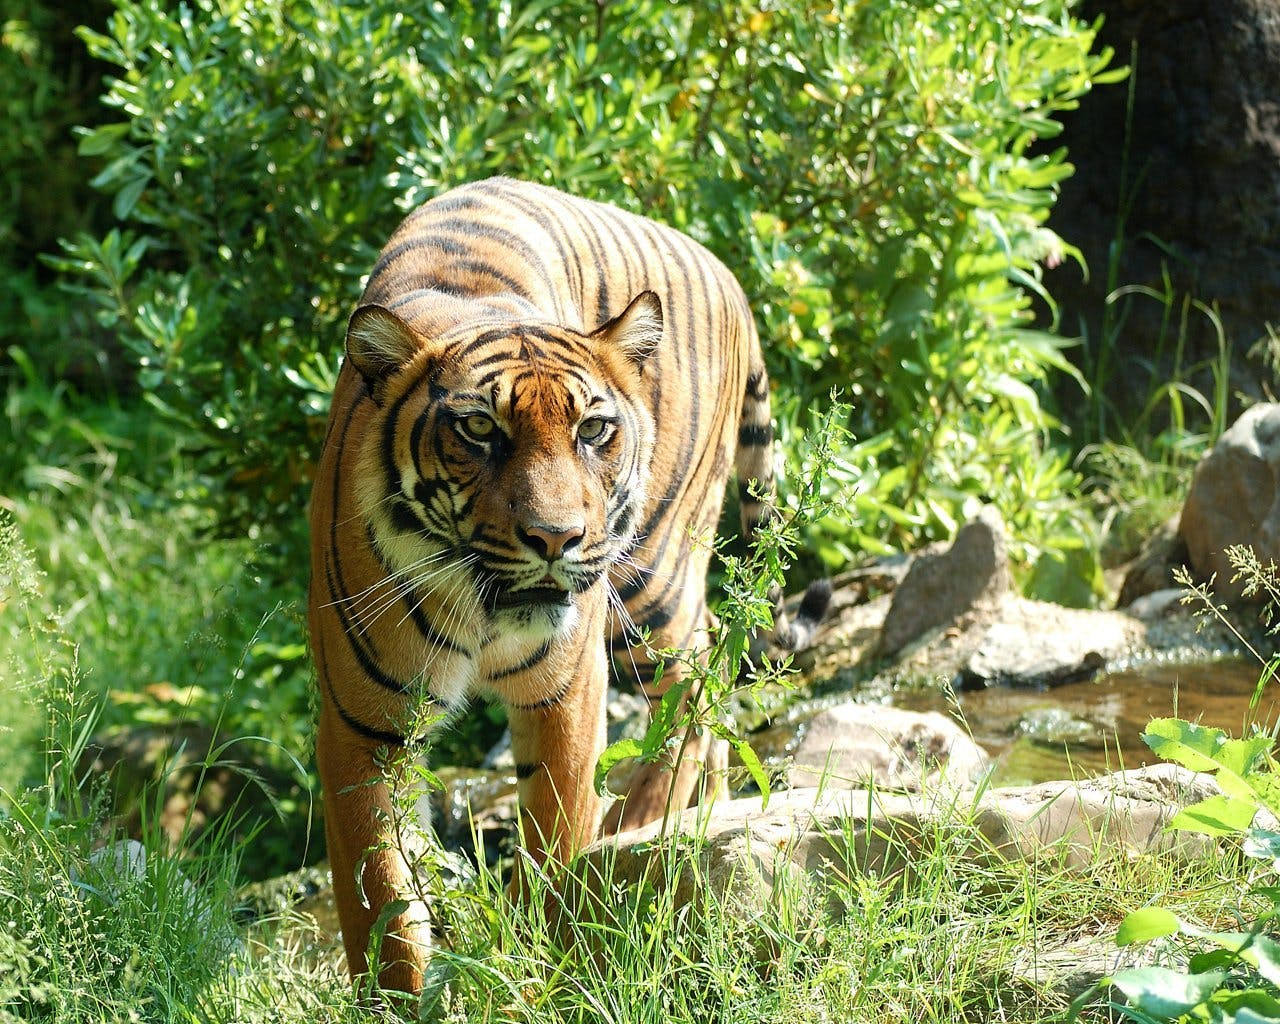 Tiger Surrounded by Green Grass